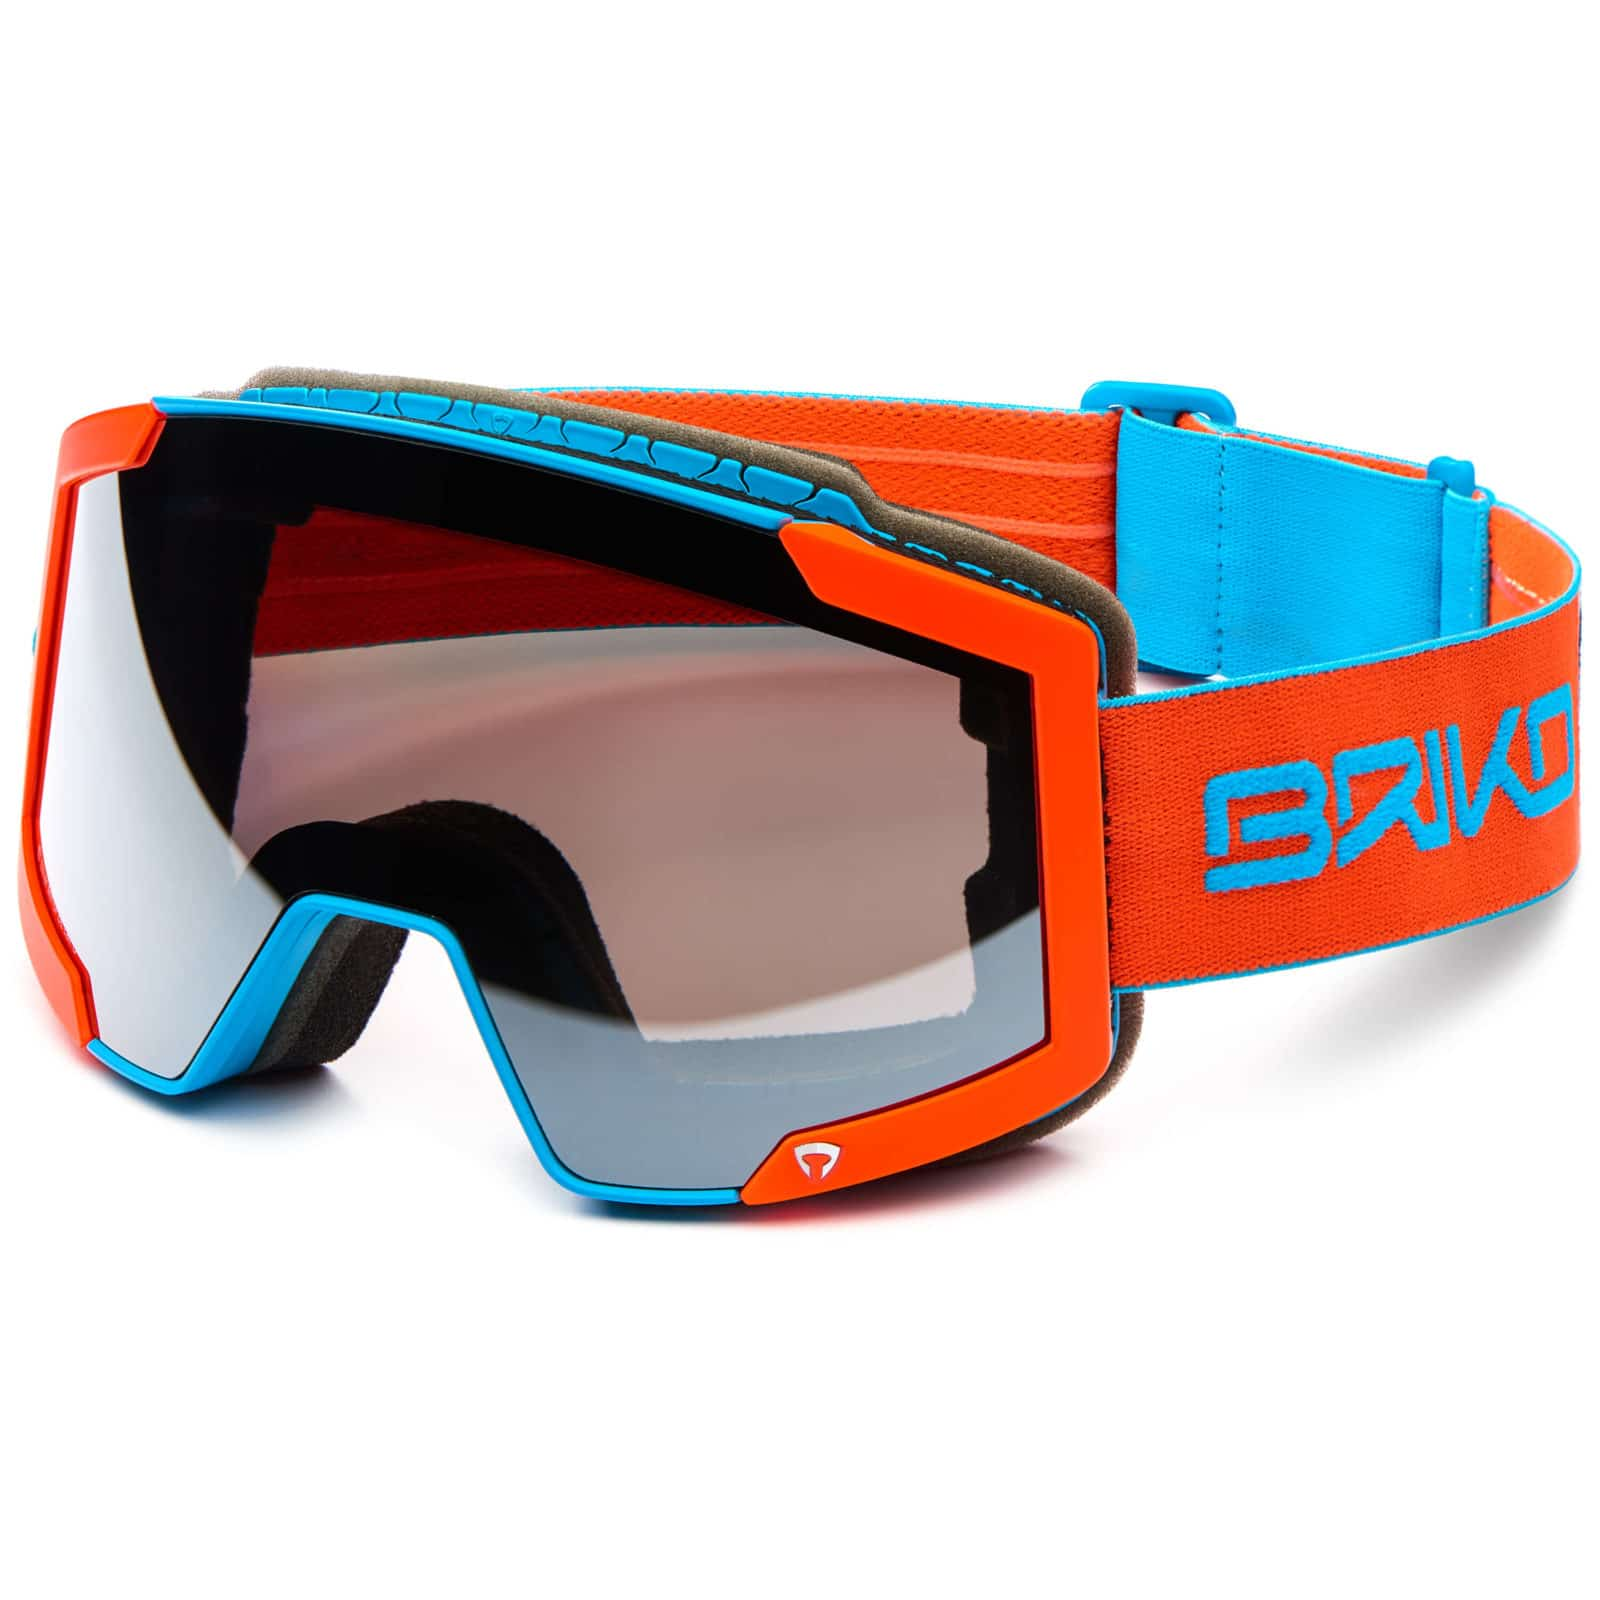 53699c8b3 Briko LAVA 7.6 Goggles - World Cup Ski Shop